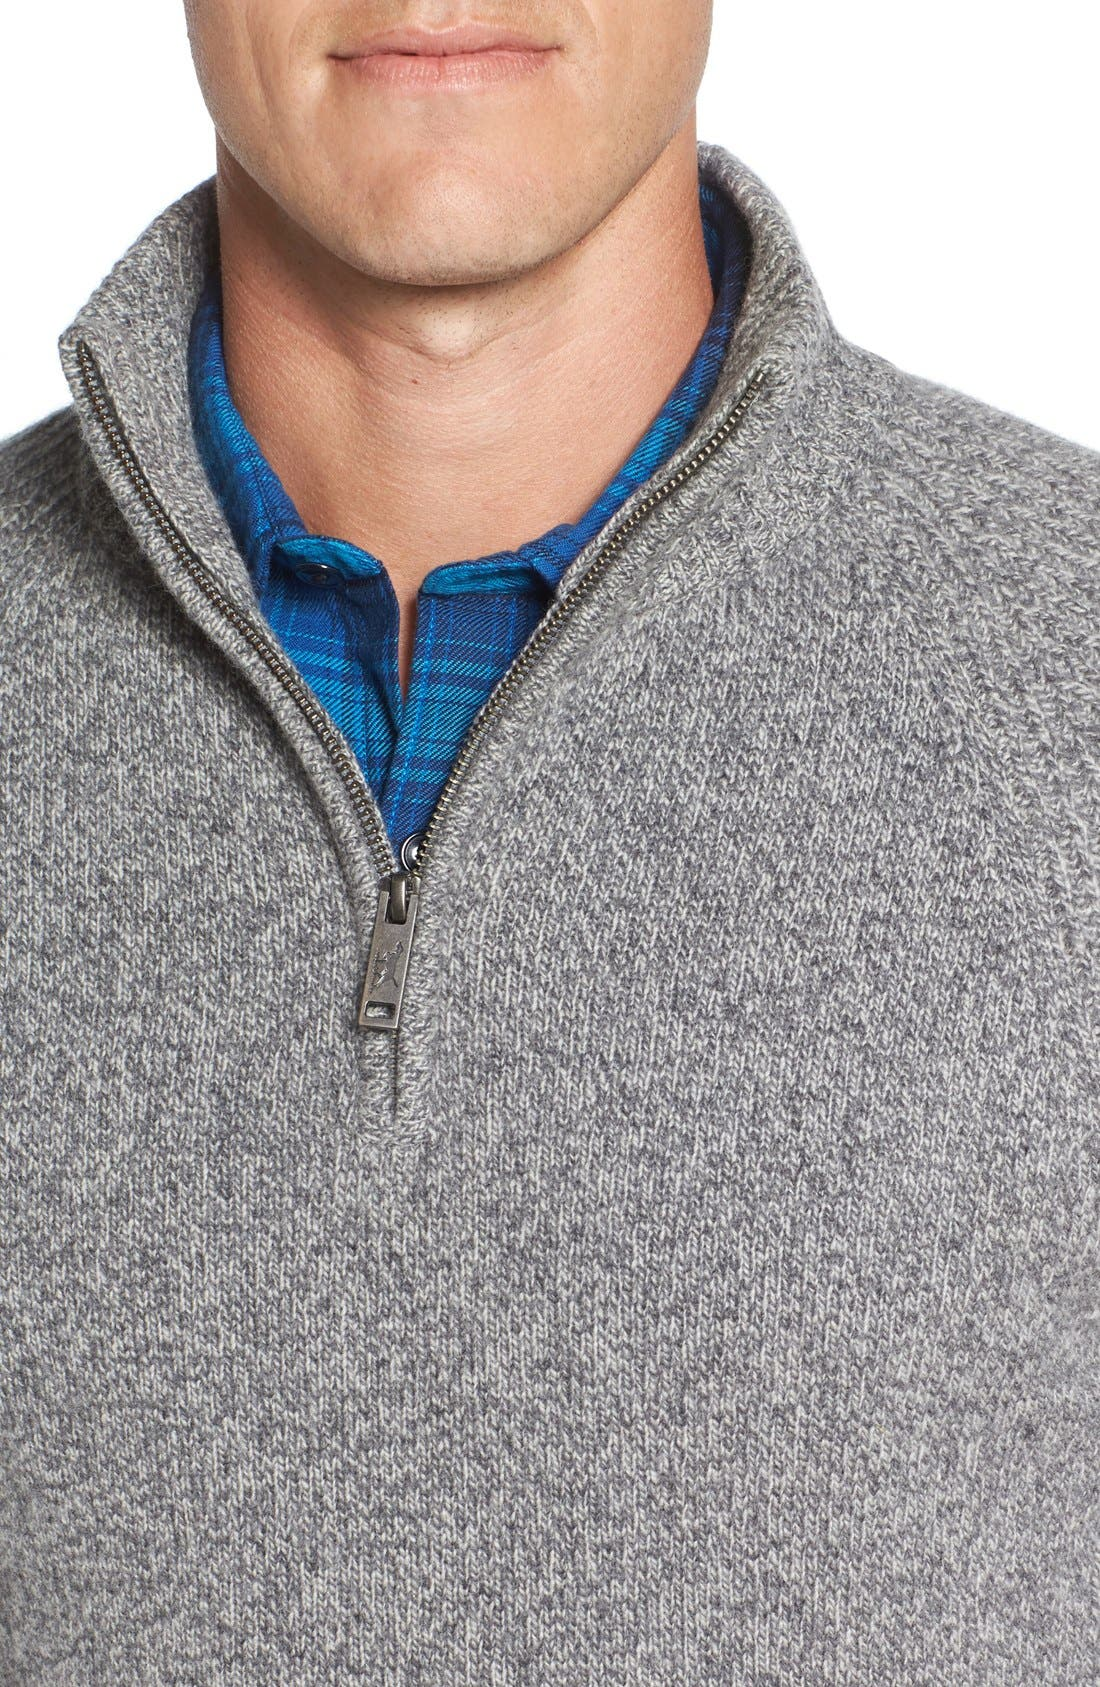 Stredwick Lambswool Sweater,                             Alternate thumbnail 19, color,